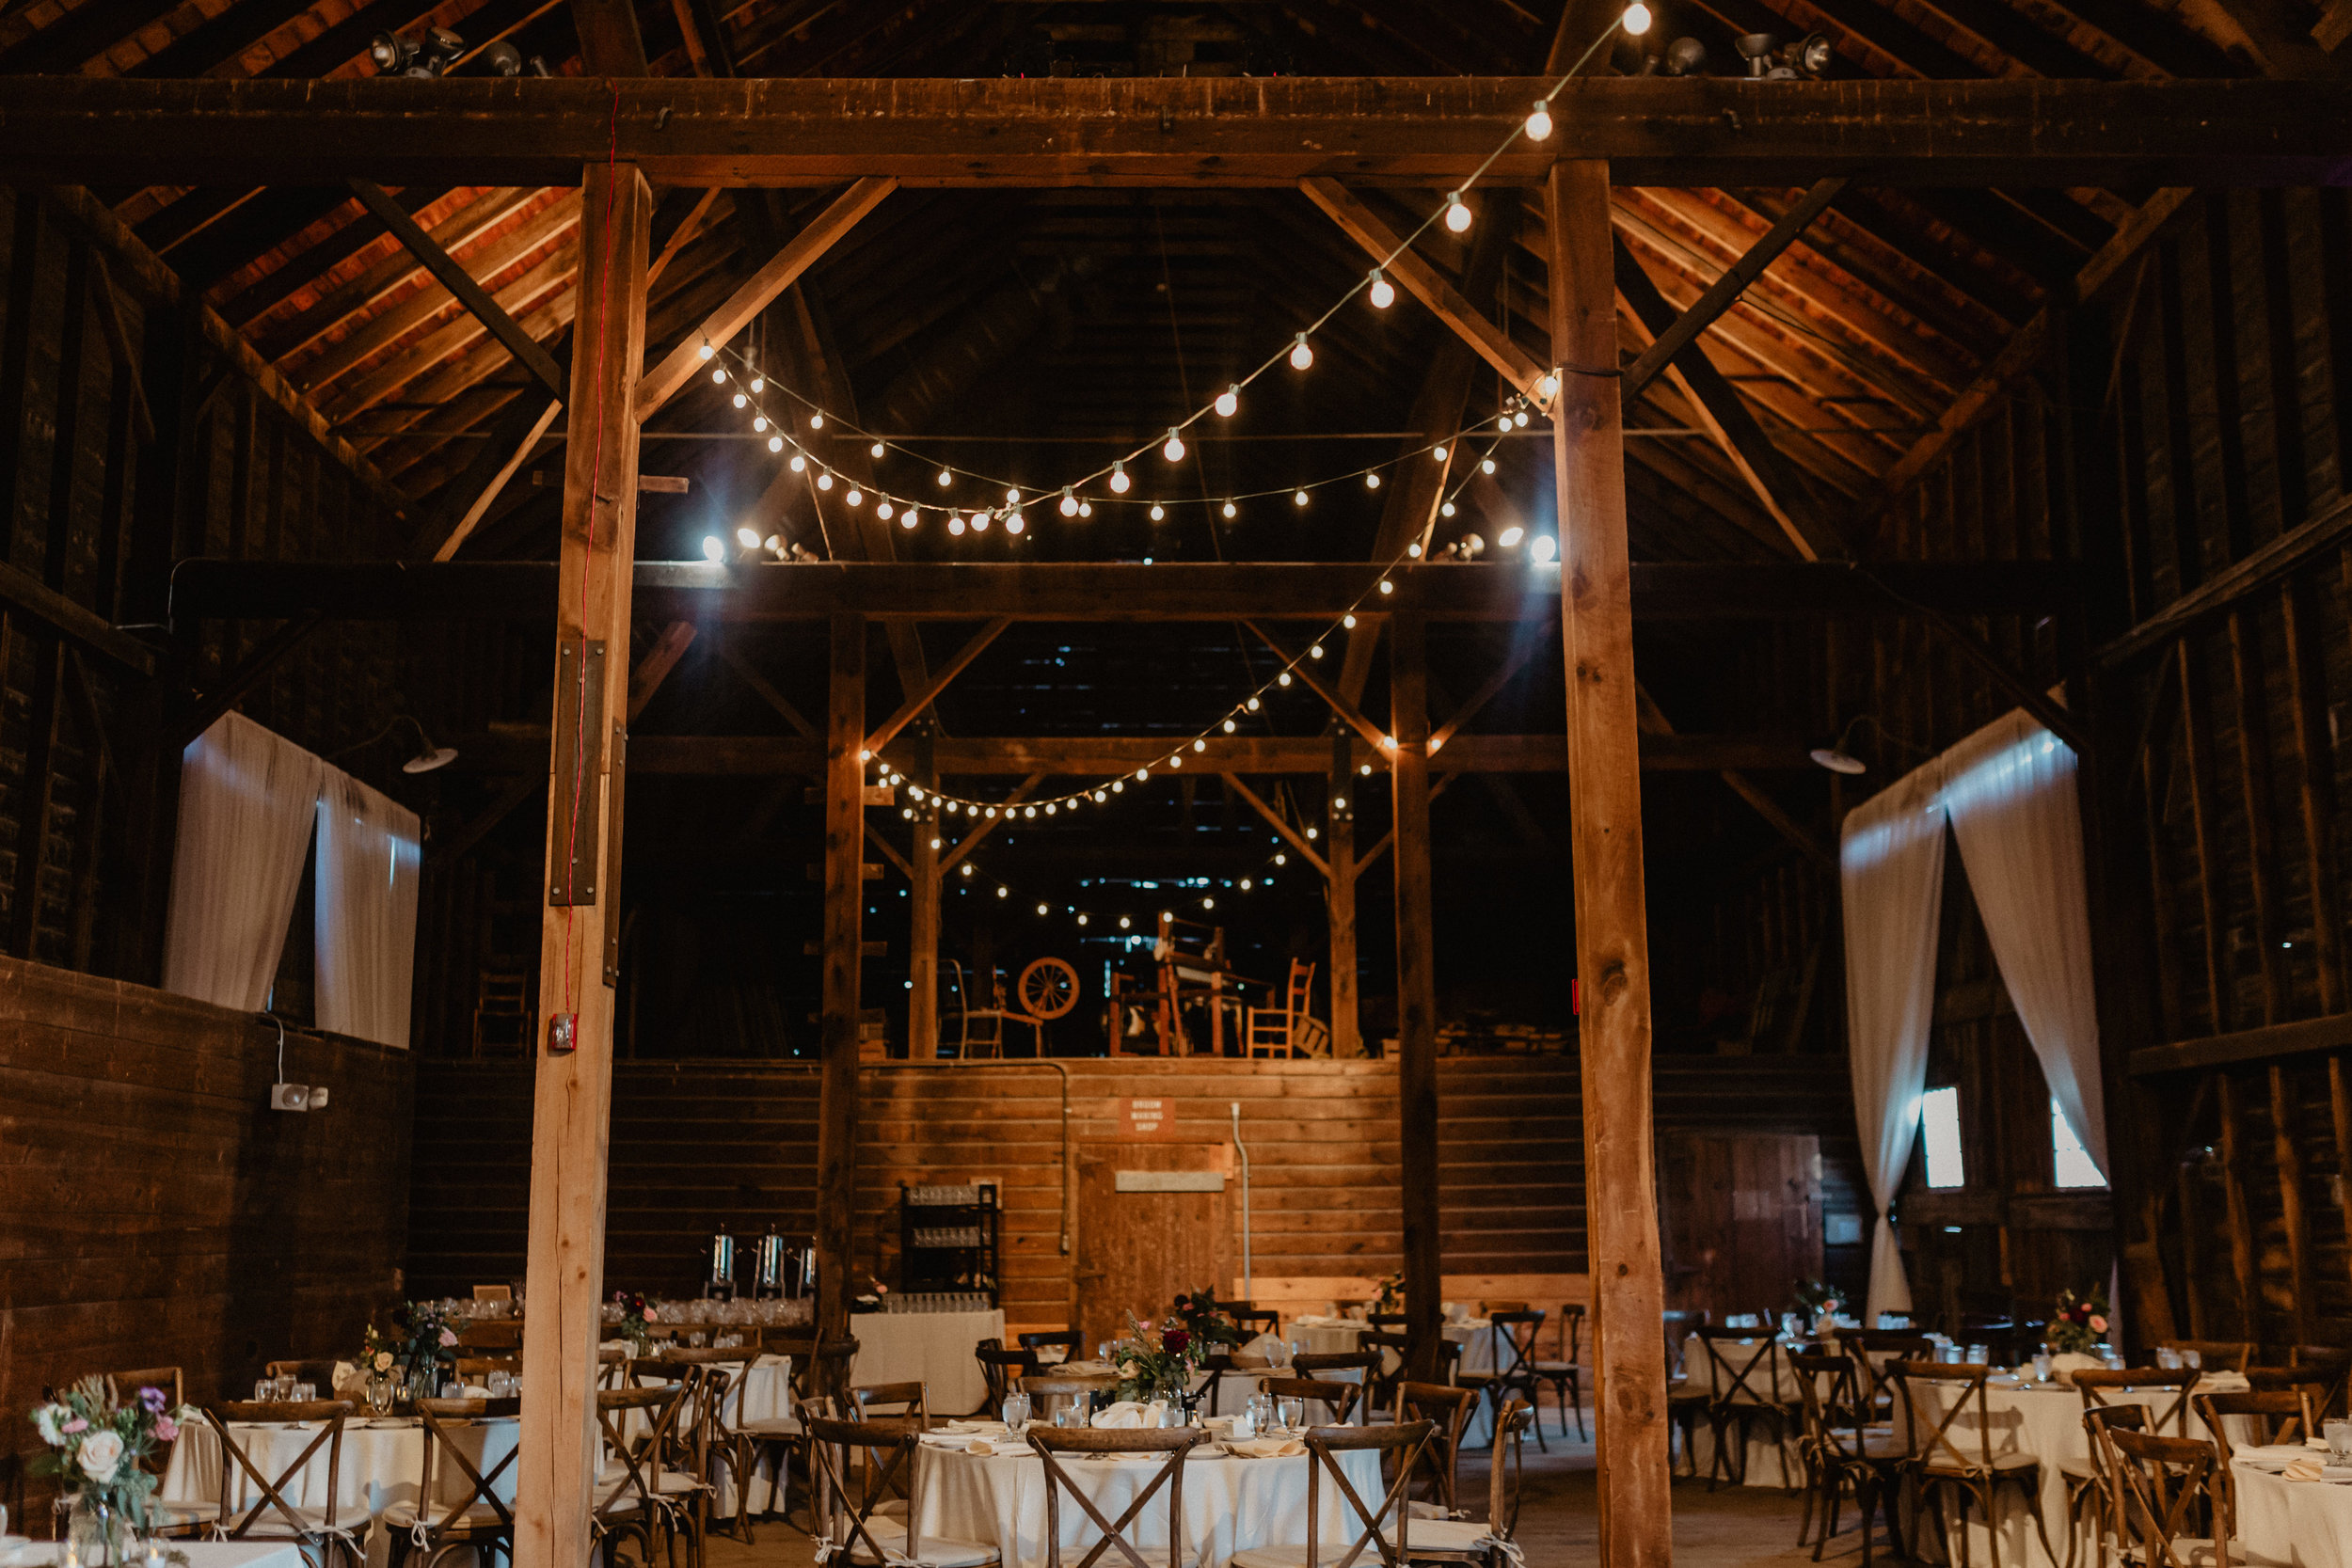 shaker_heritage_barn_wedding_032.jpg